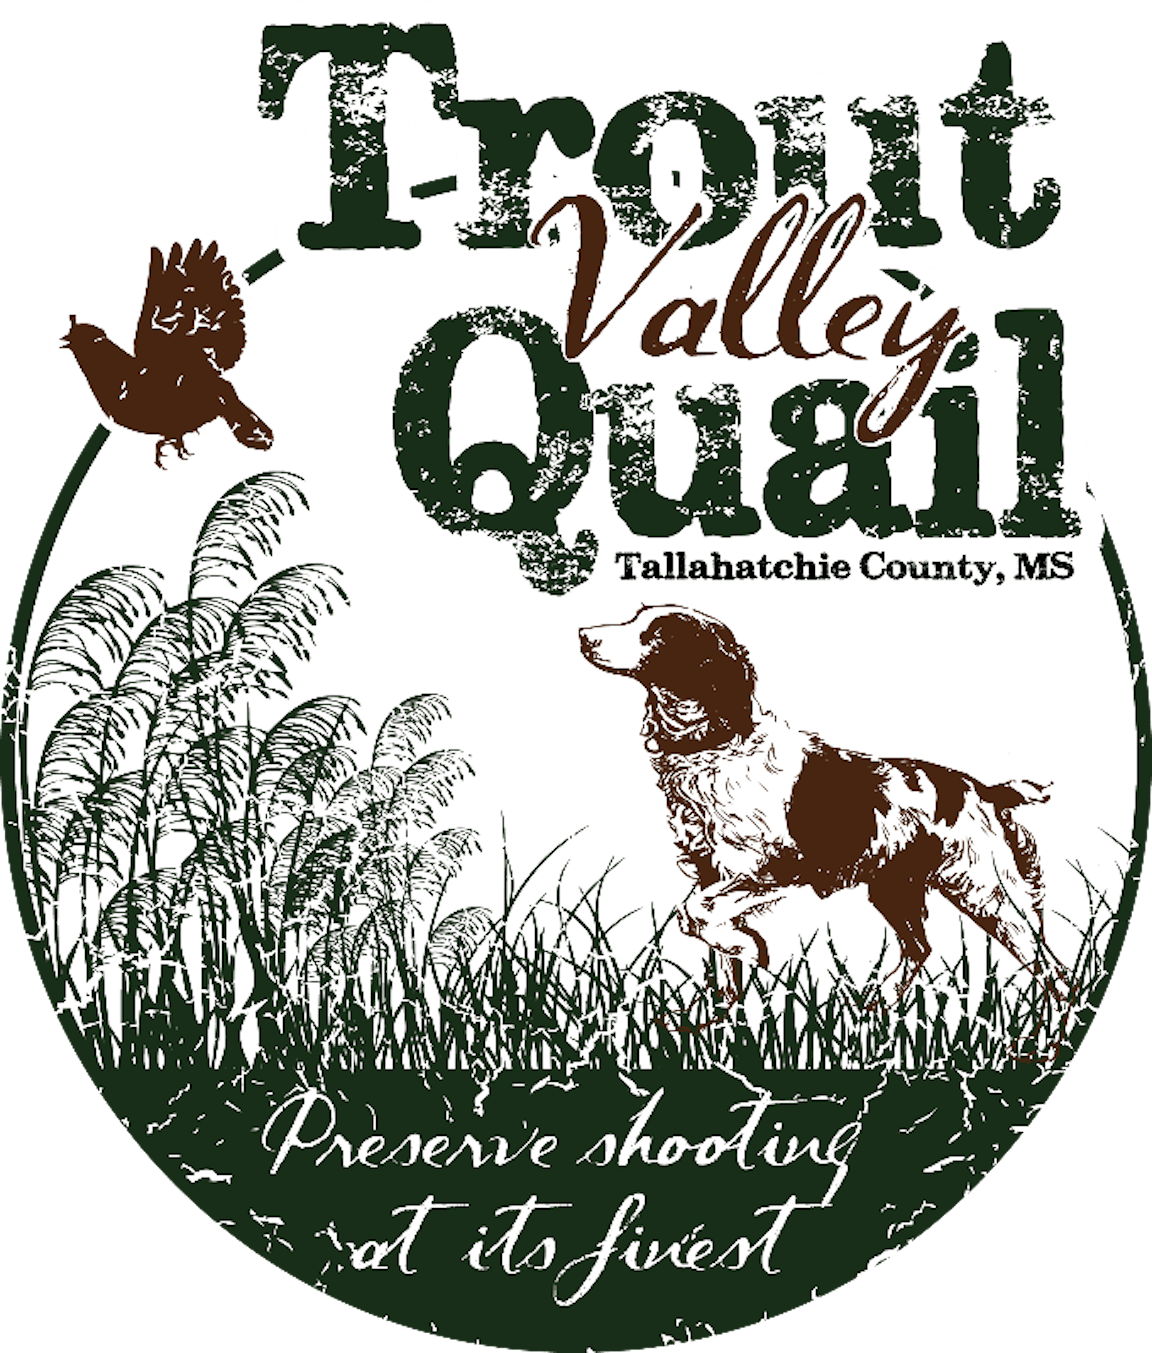 Trout Valley Quail